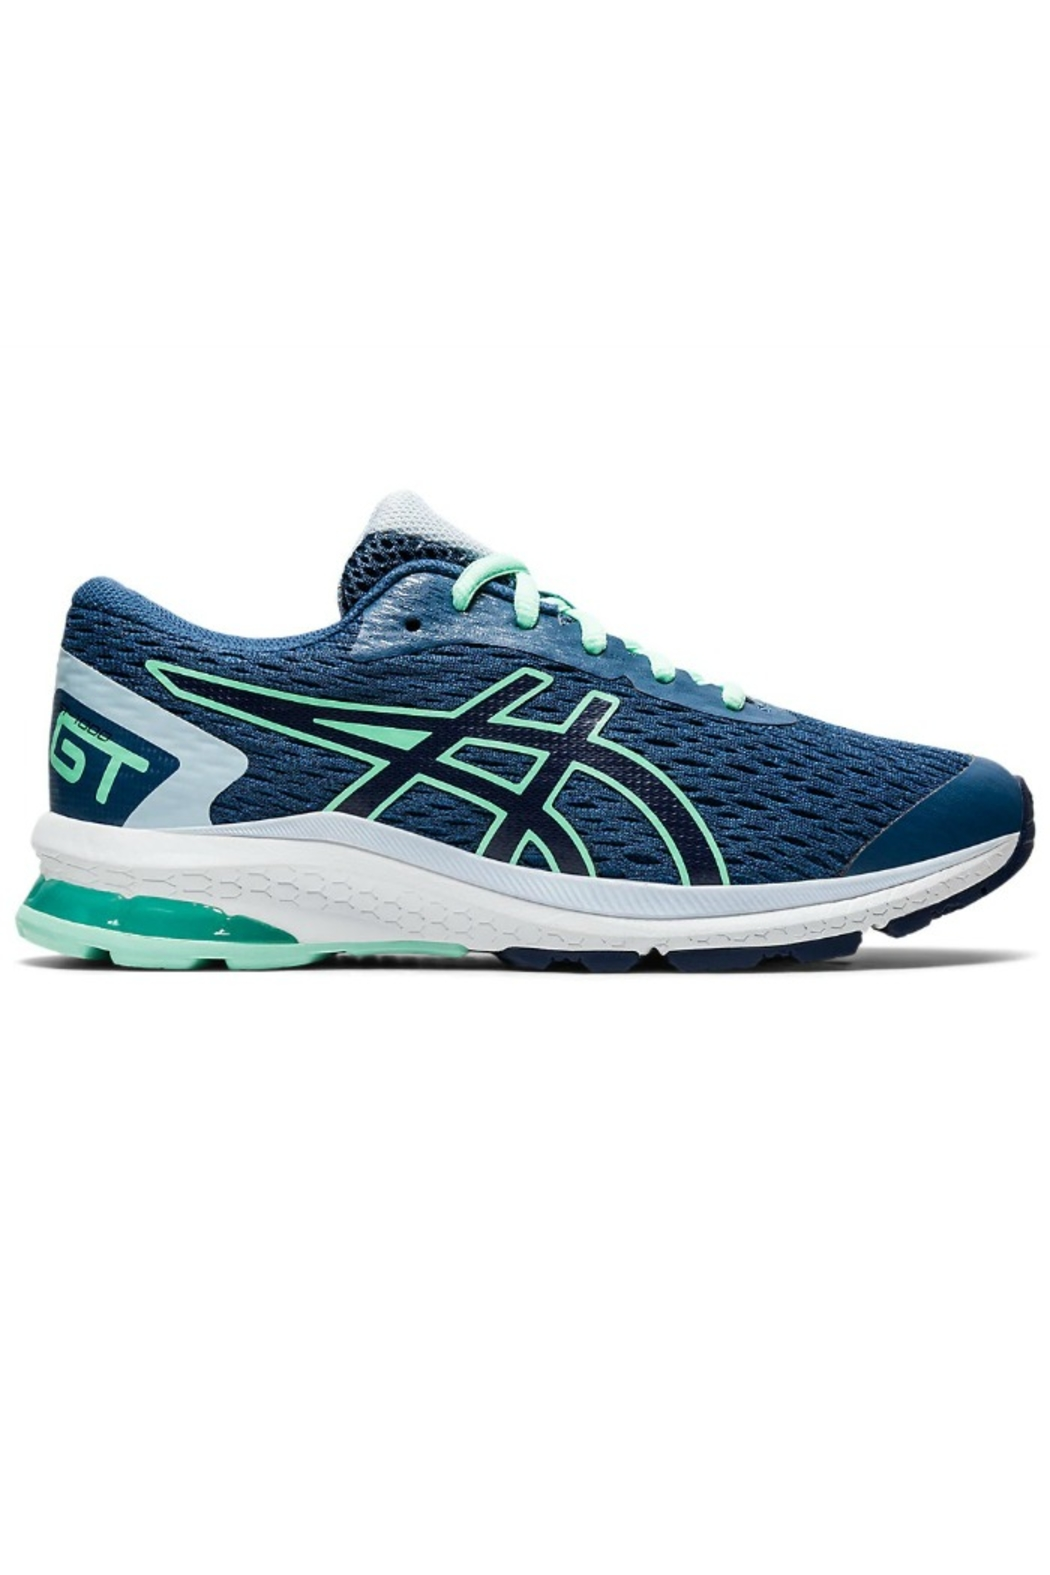 Asics Boys GT 1000 9 GS in Navy/Orange - Front Cropped Image